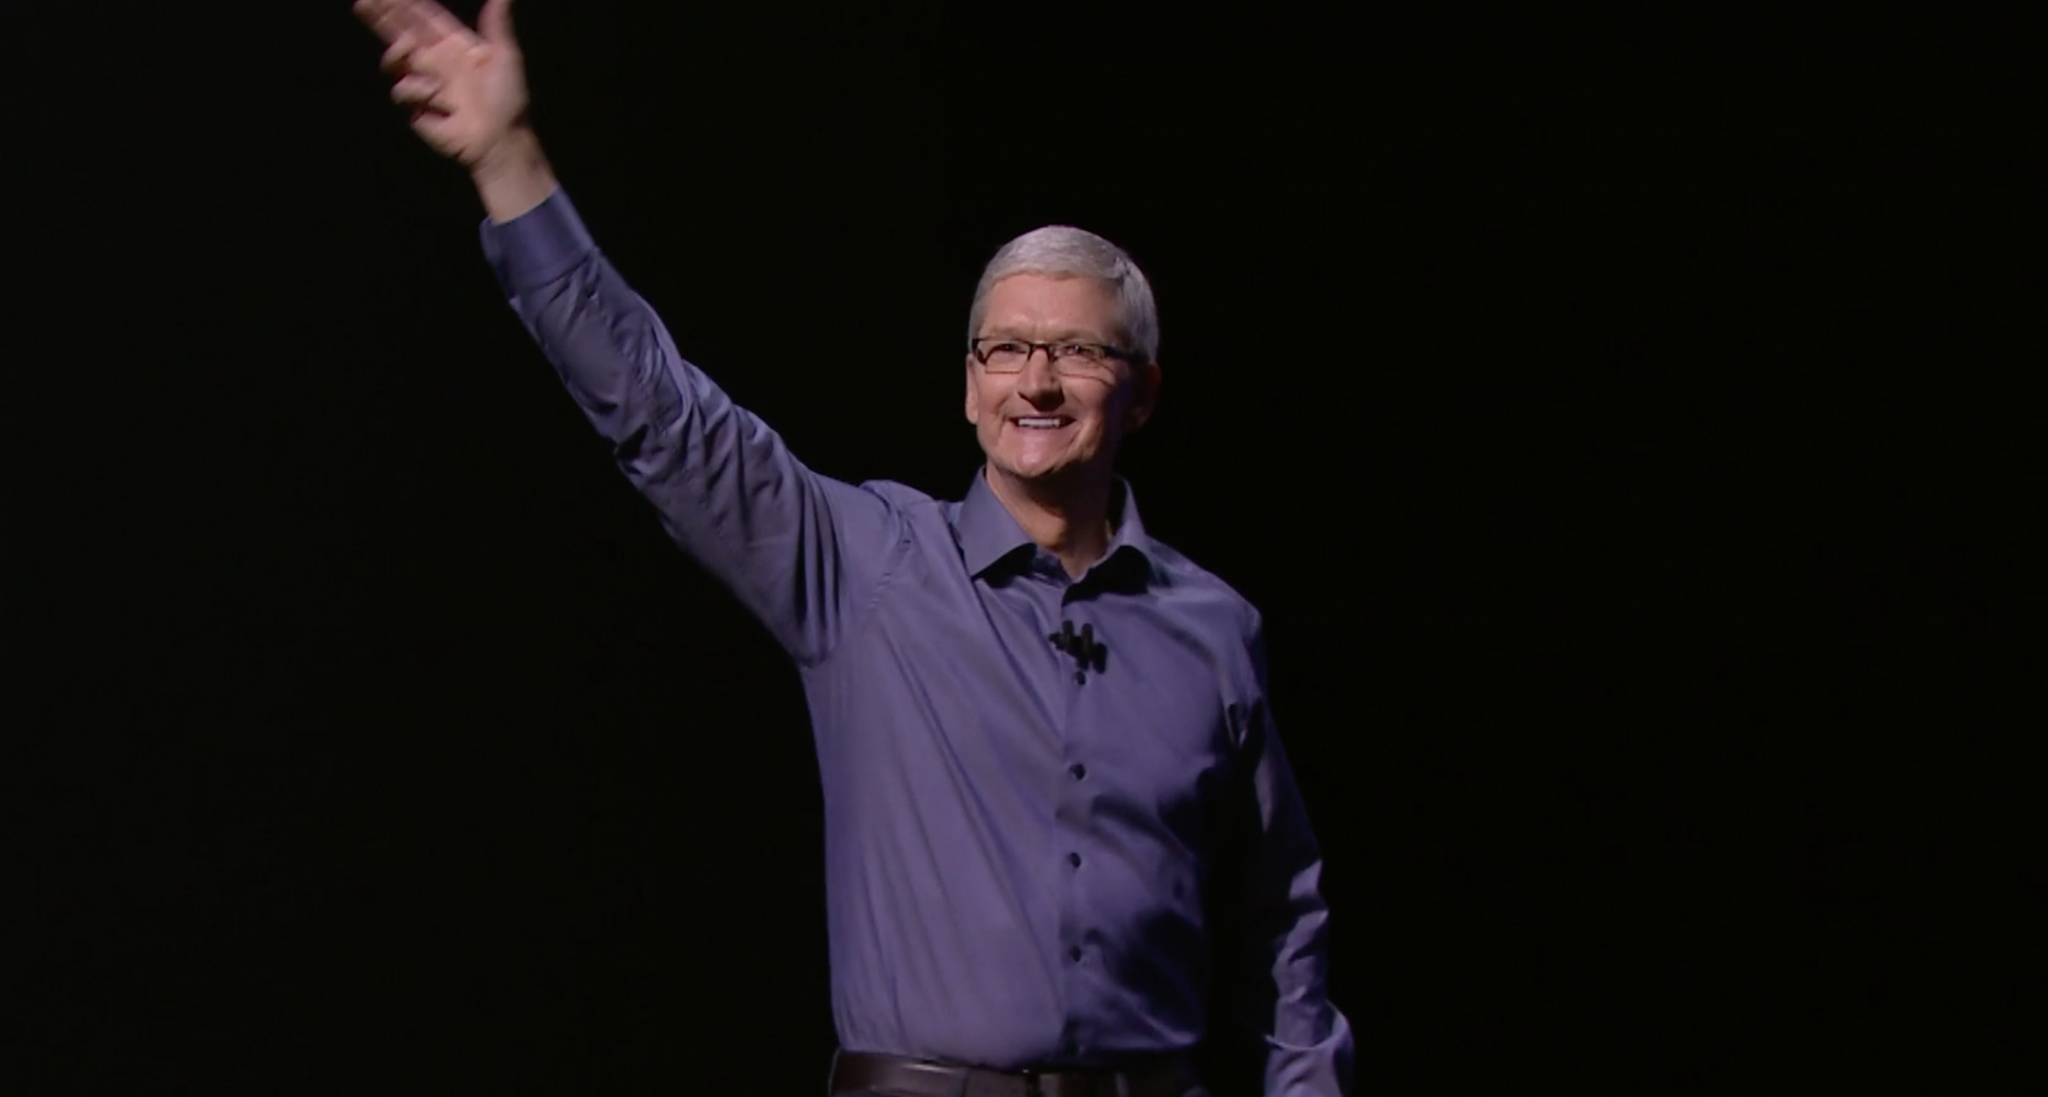 Apple Shines Up Its Lineup With New iPhones, iPads and More